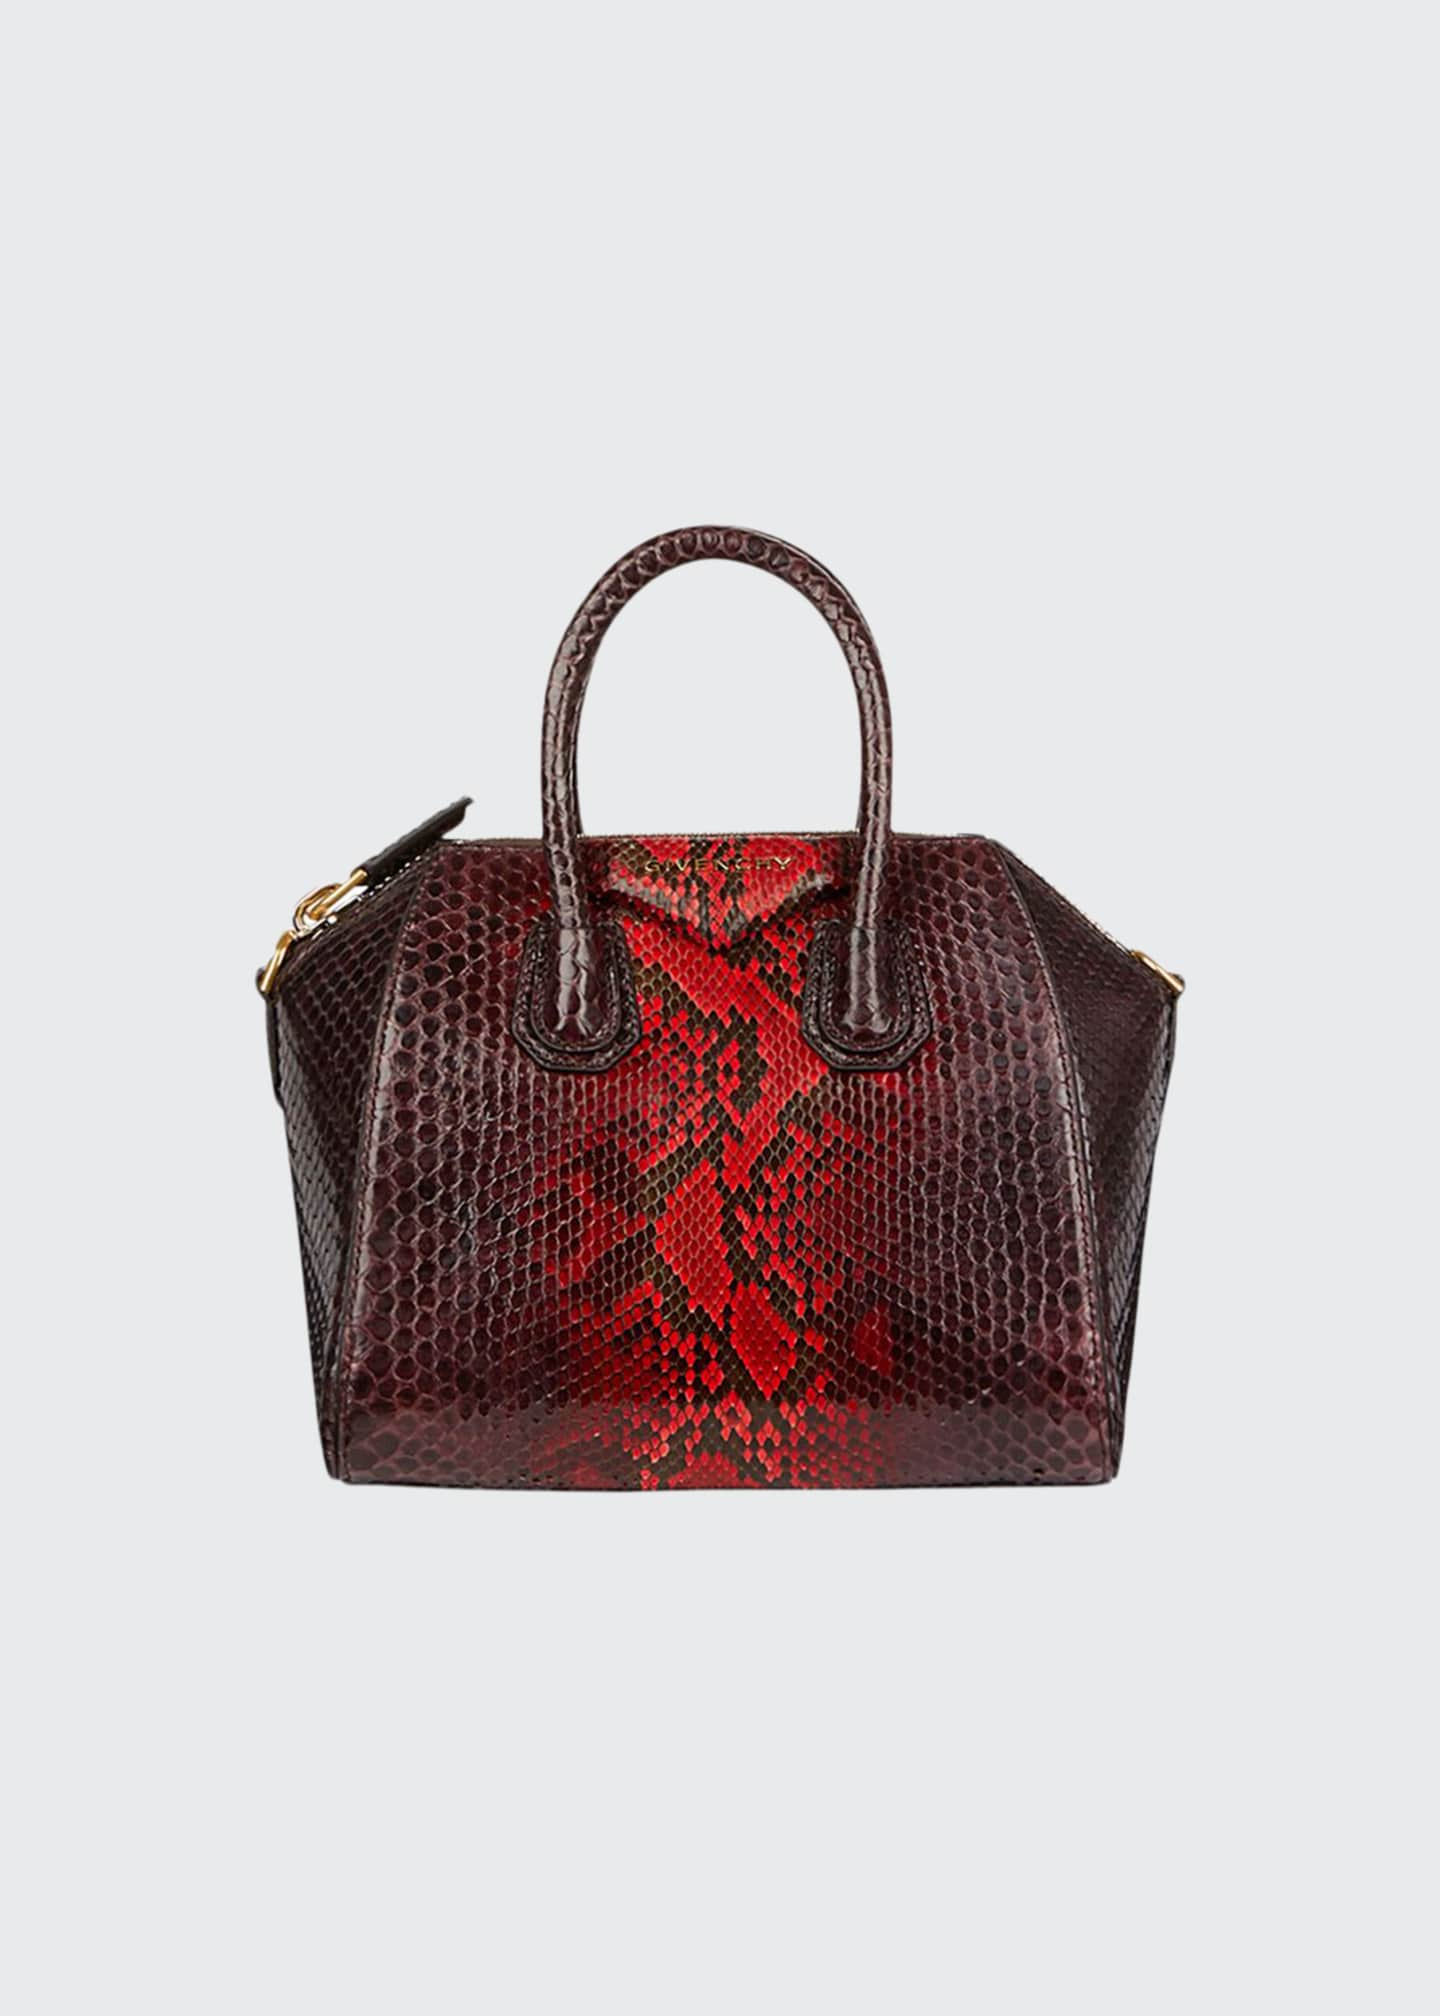 Givenchy Antigona Mini Shiny Python Satchel Bag